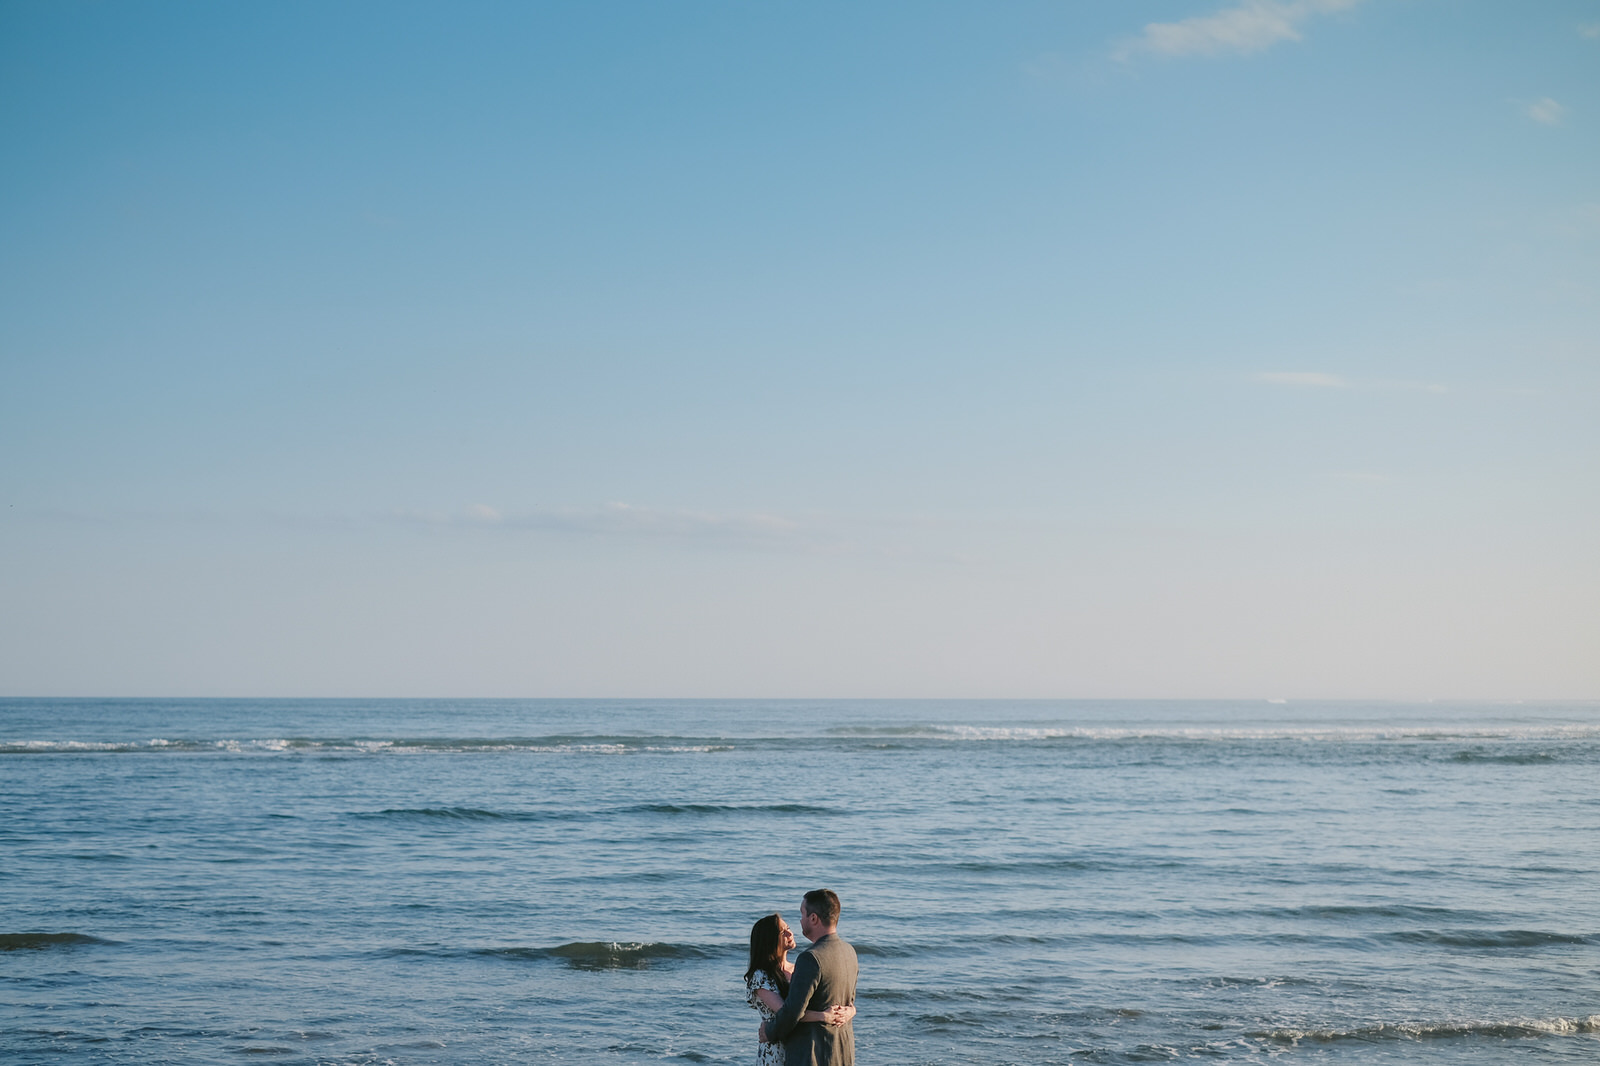 lawrencetown beach nova scotia engagement photos evan mcmaster-3.jpg